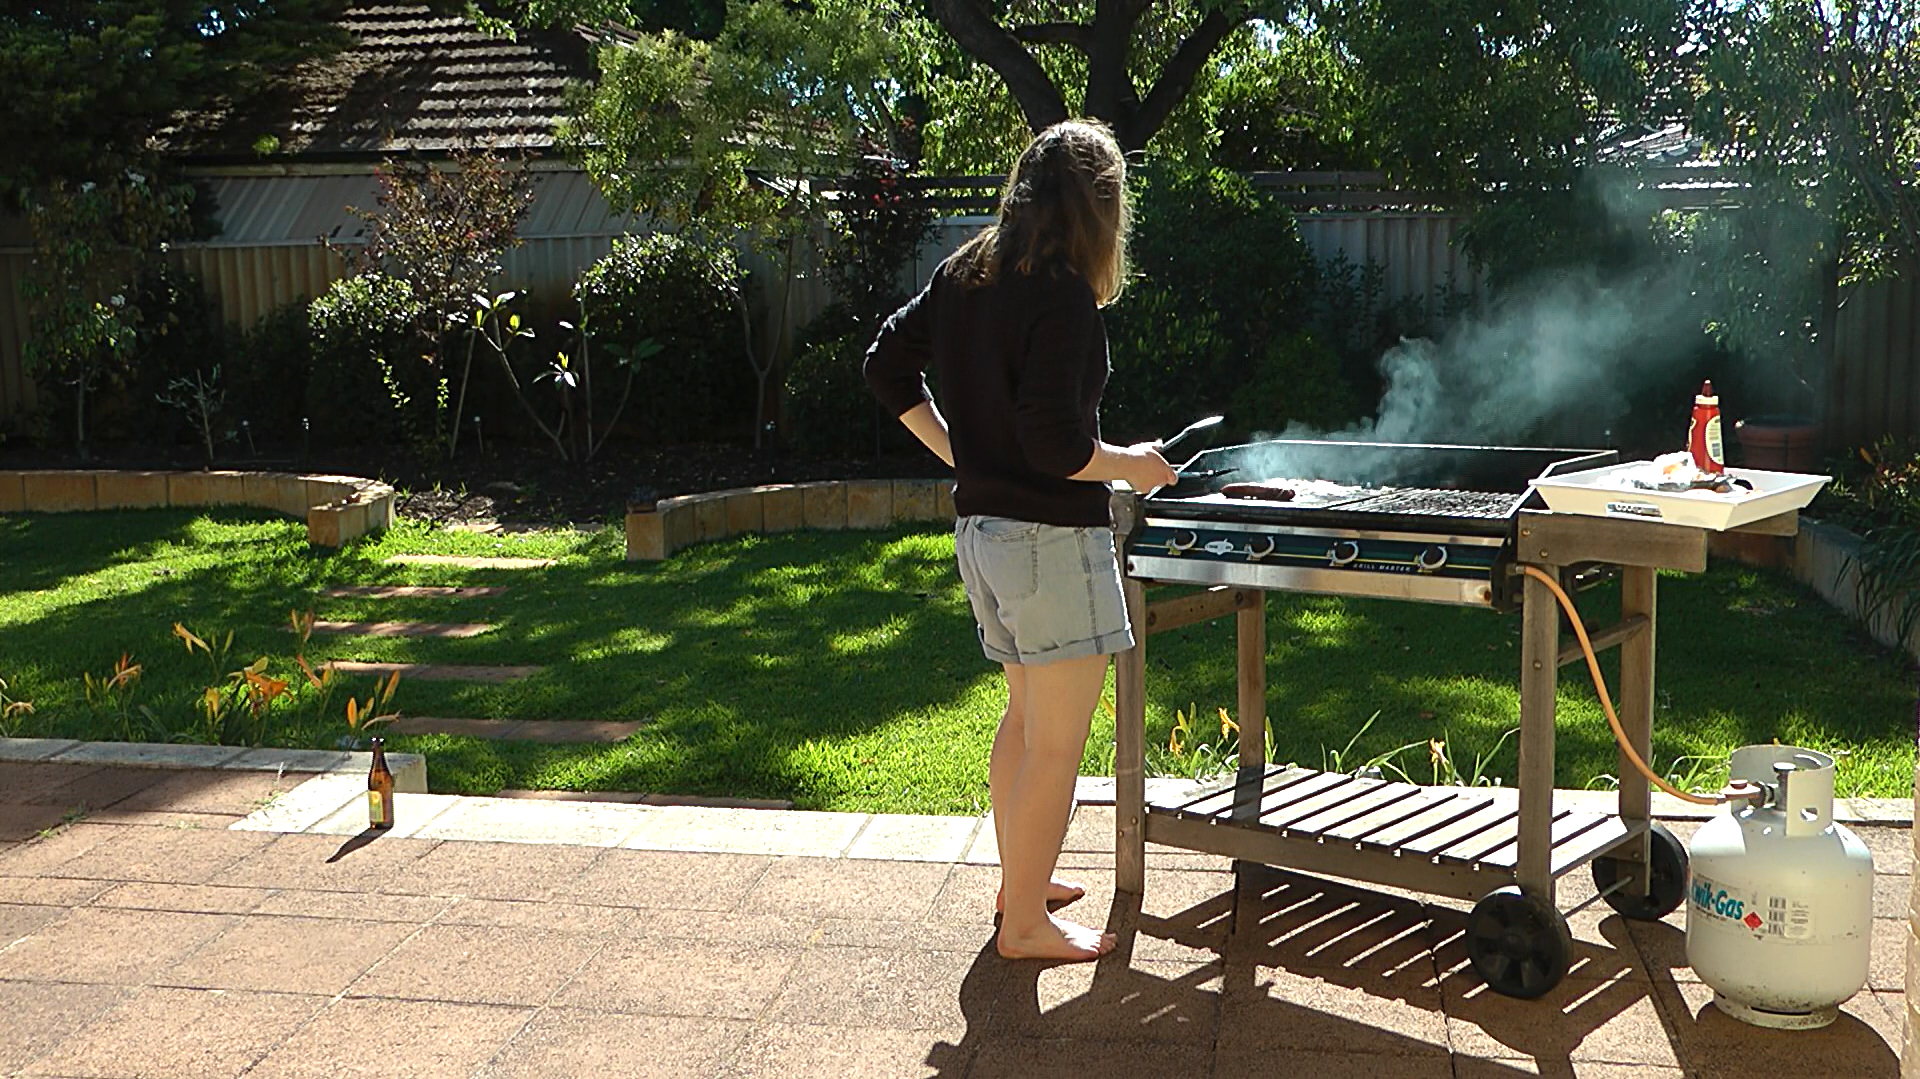 Selected stills from video 2014, documentation of occasional performance in own backyard in Australia,15:56 minutes.